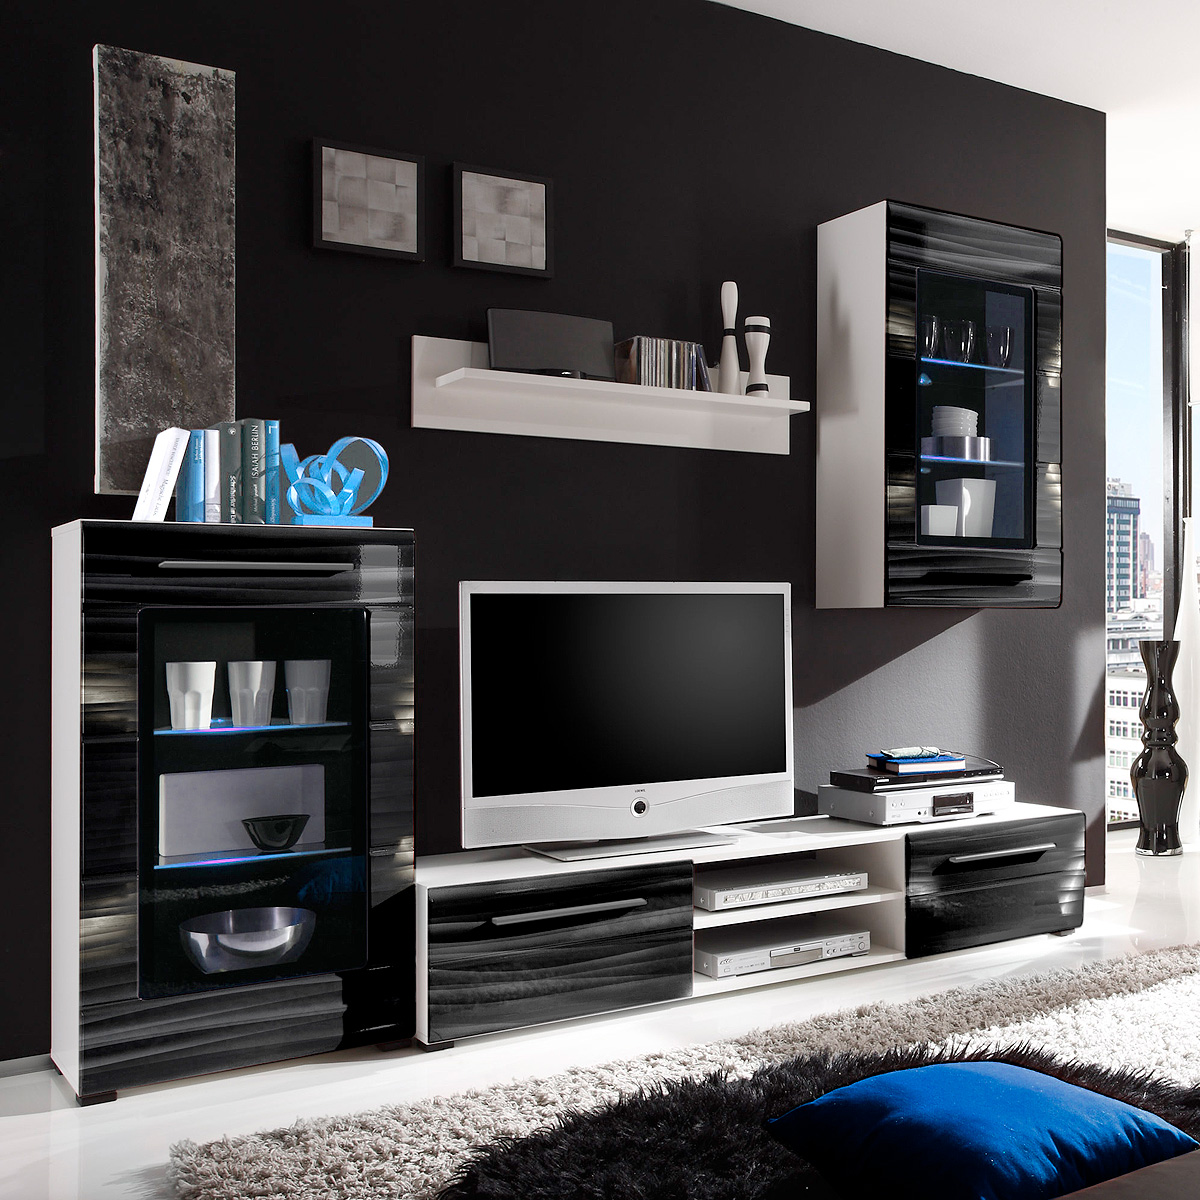 wohnwand sahara anbauwand wohnzimmer in schwarz und wei mit 3d folie und led ebay. Black Bedroom Furniture Sets. Home Design Ideas